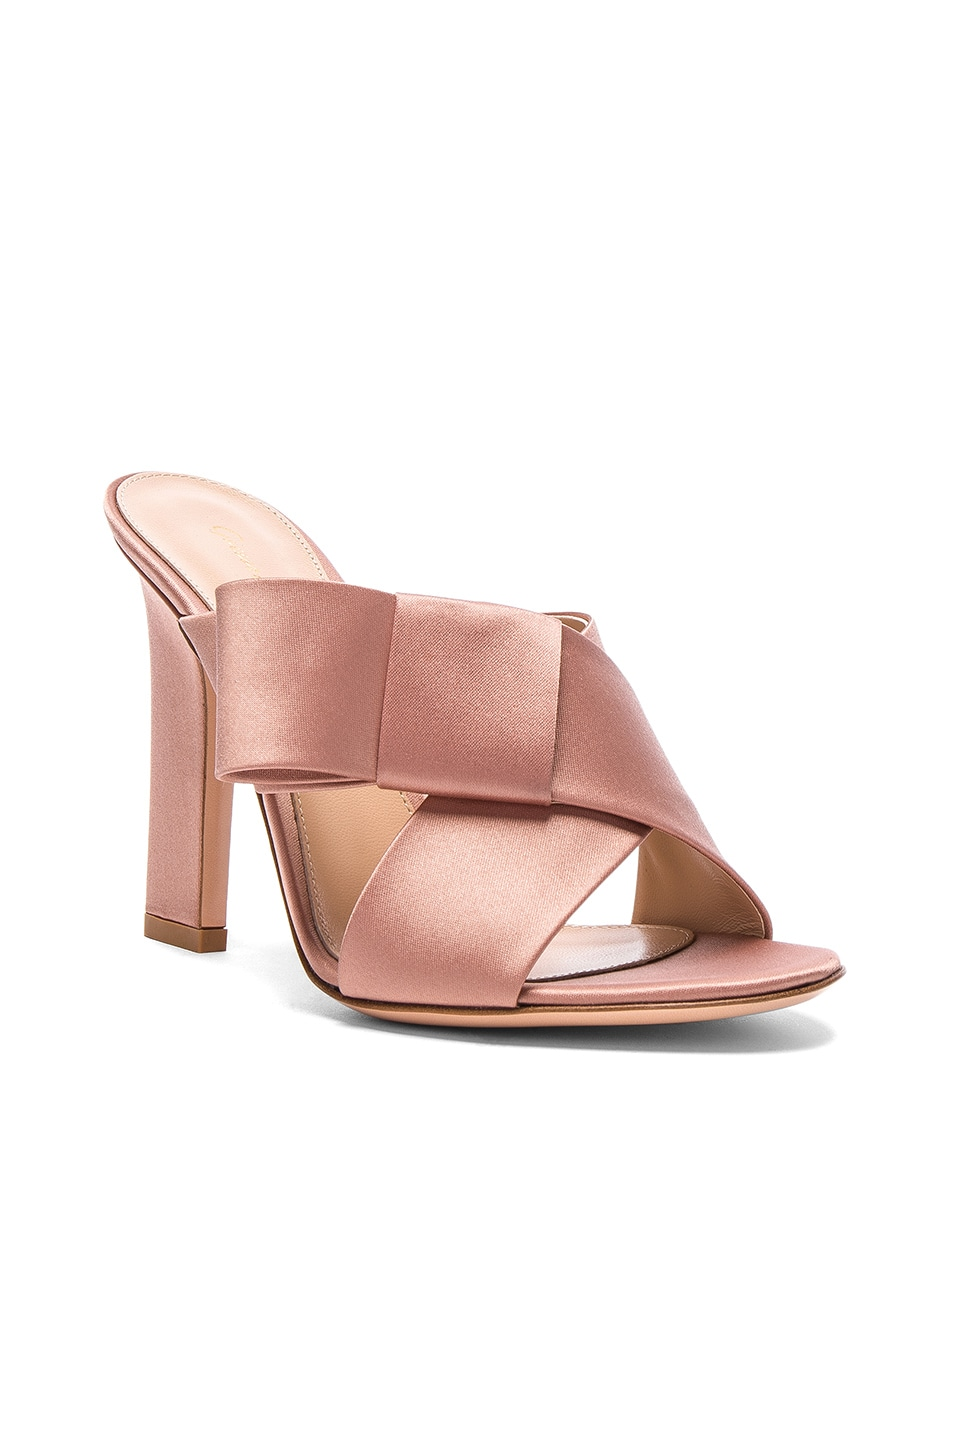 cheap outlet store Gianvito Rossi bow mules big discount cheap price L8QcSFYm